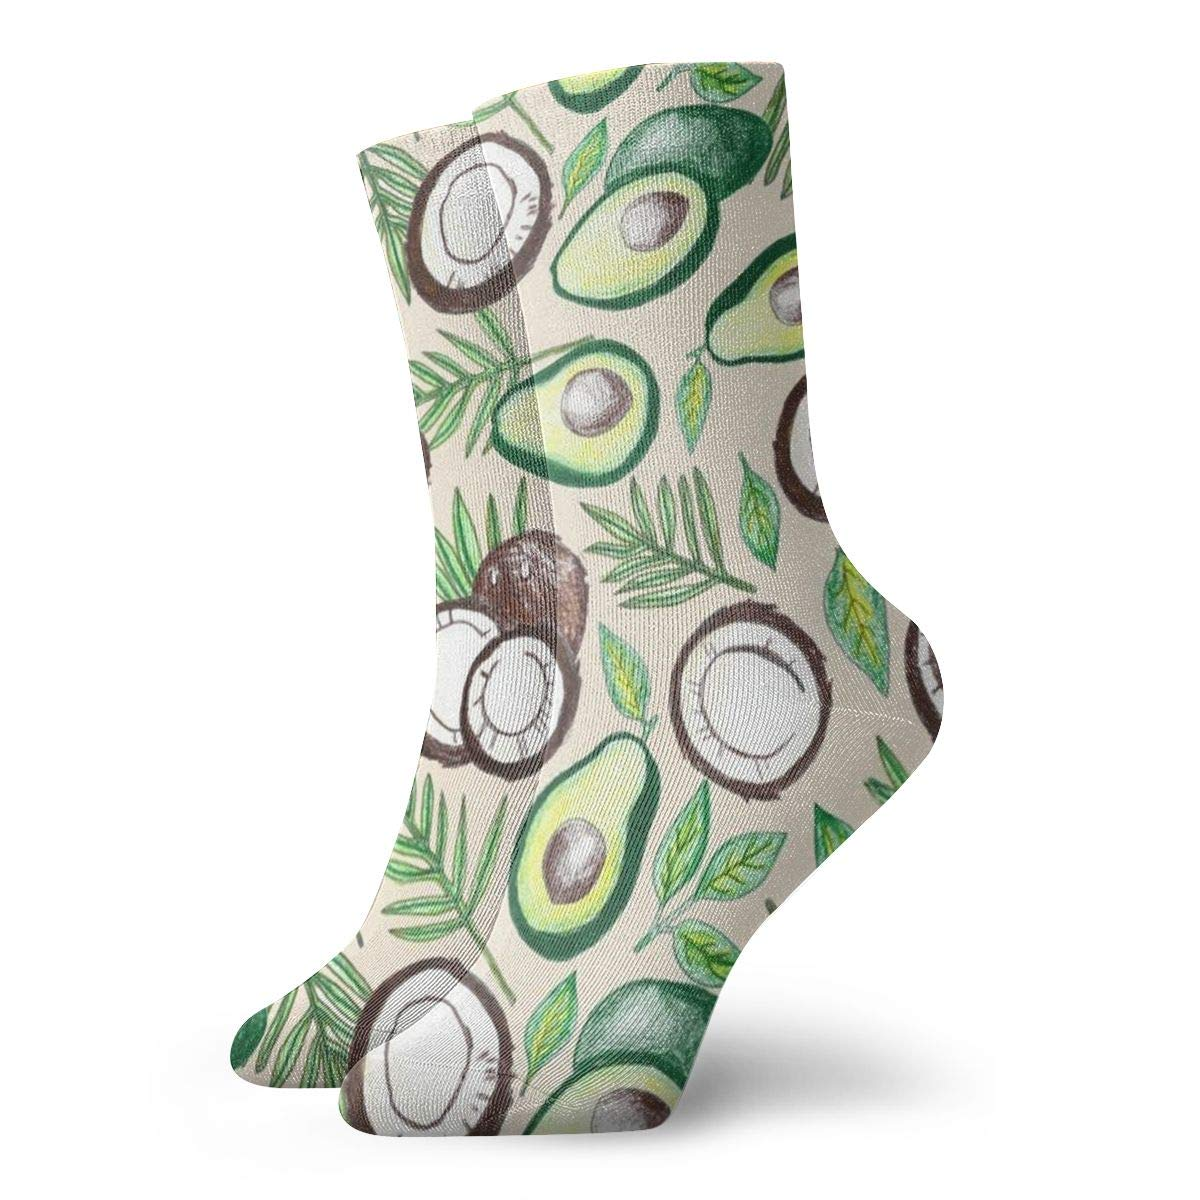 Coconuts /& Avocados Unisex Funny Casual Crew Socks Athletic Socks For Boys Girls Kids Teenagers